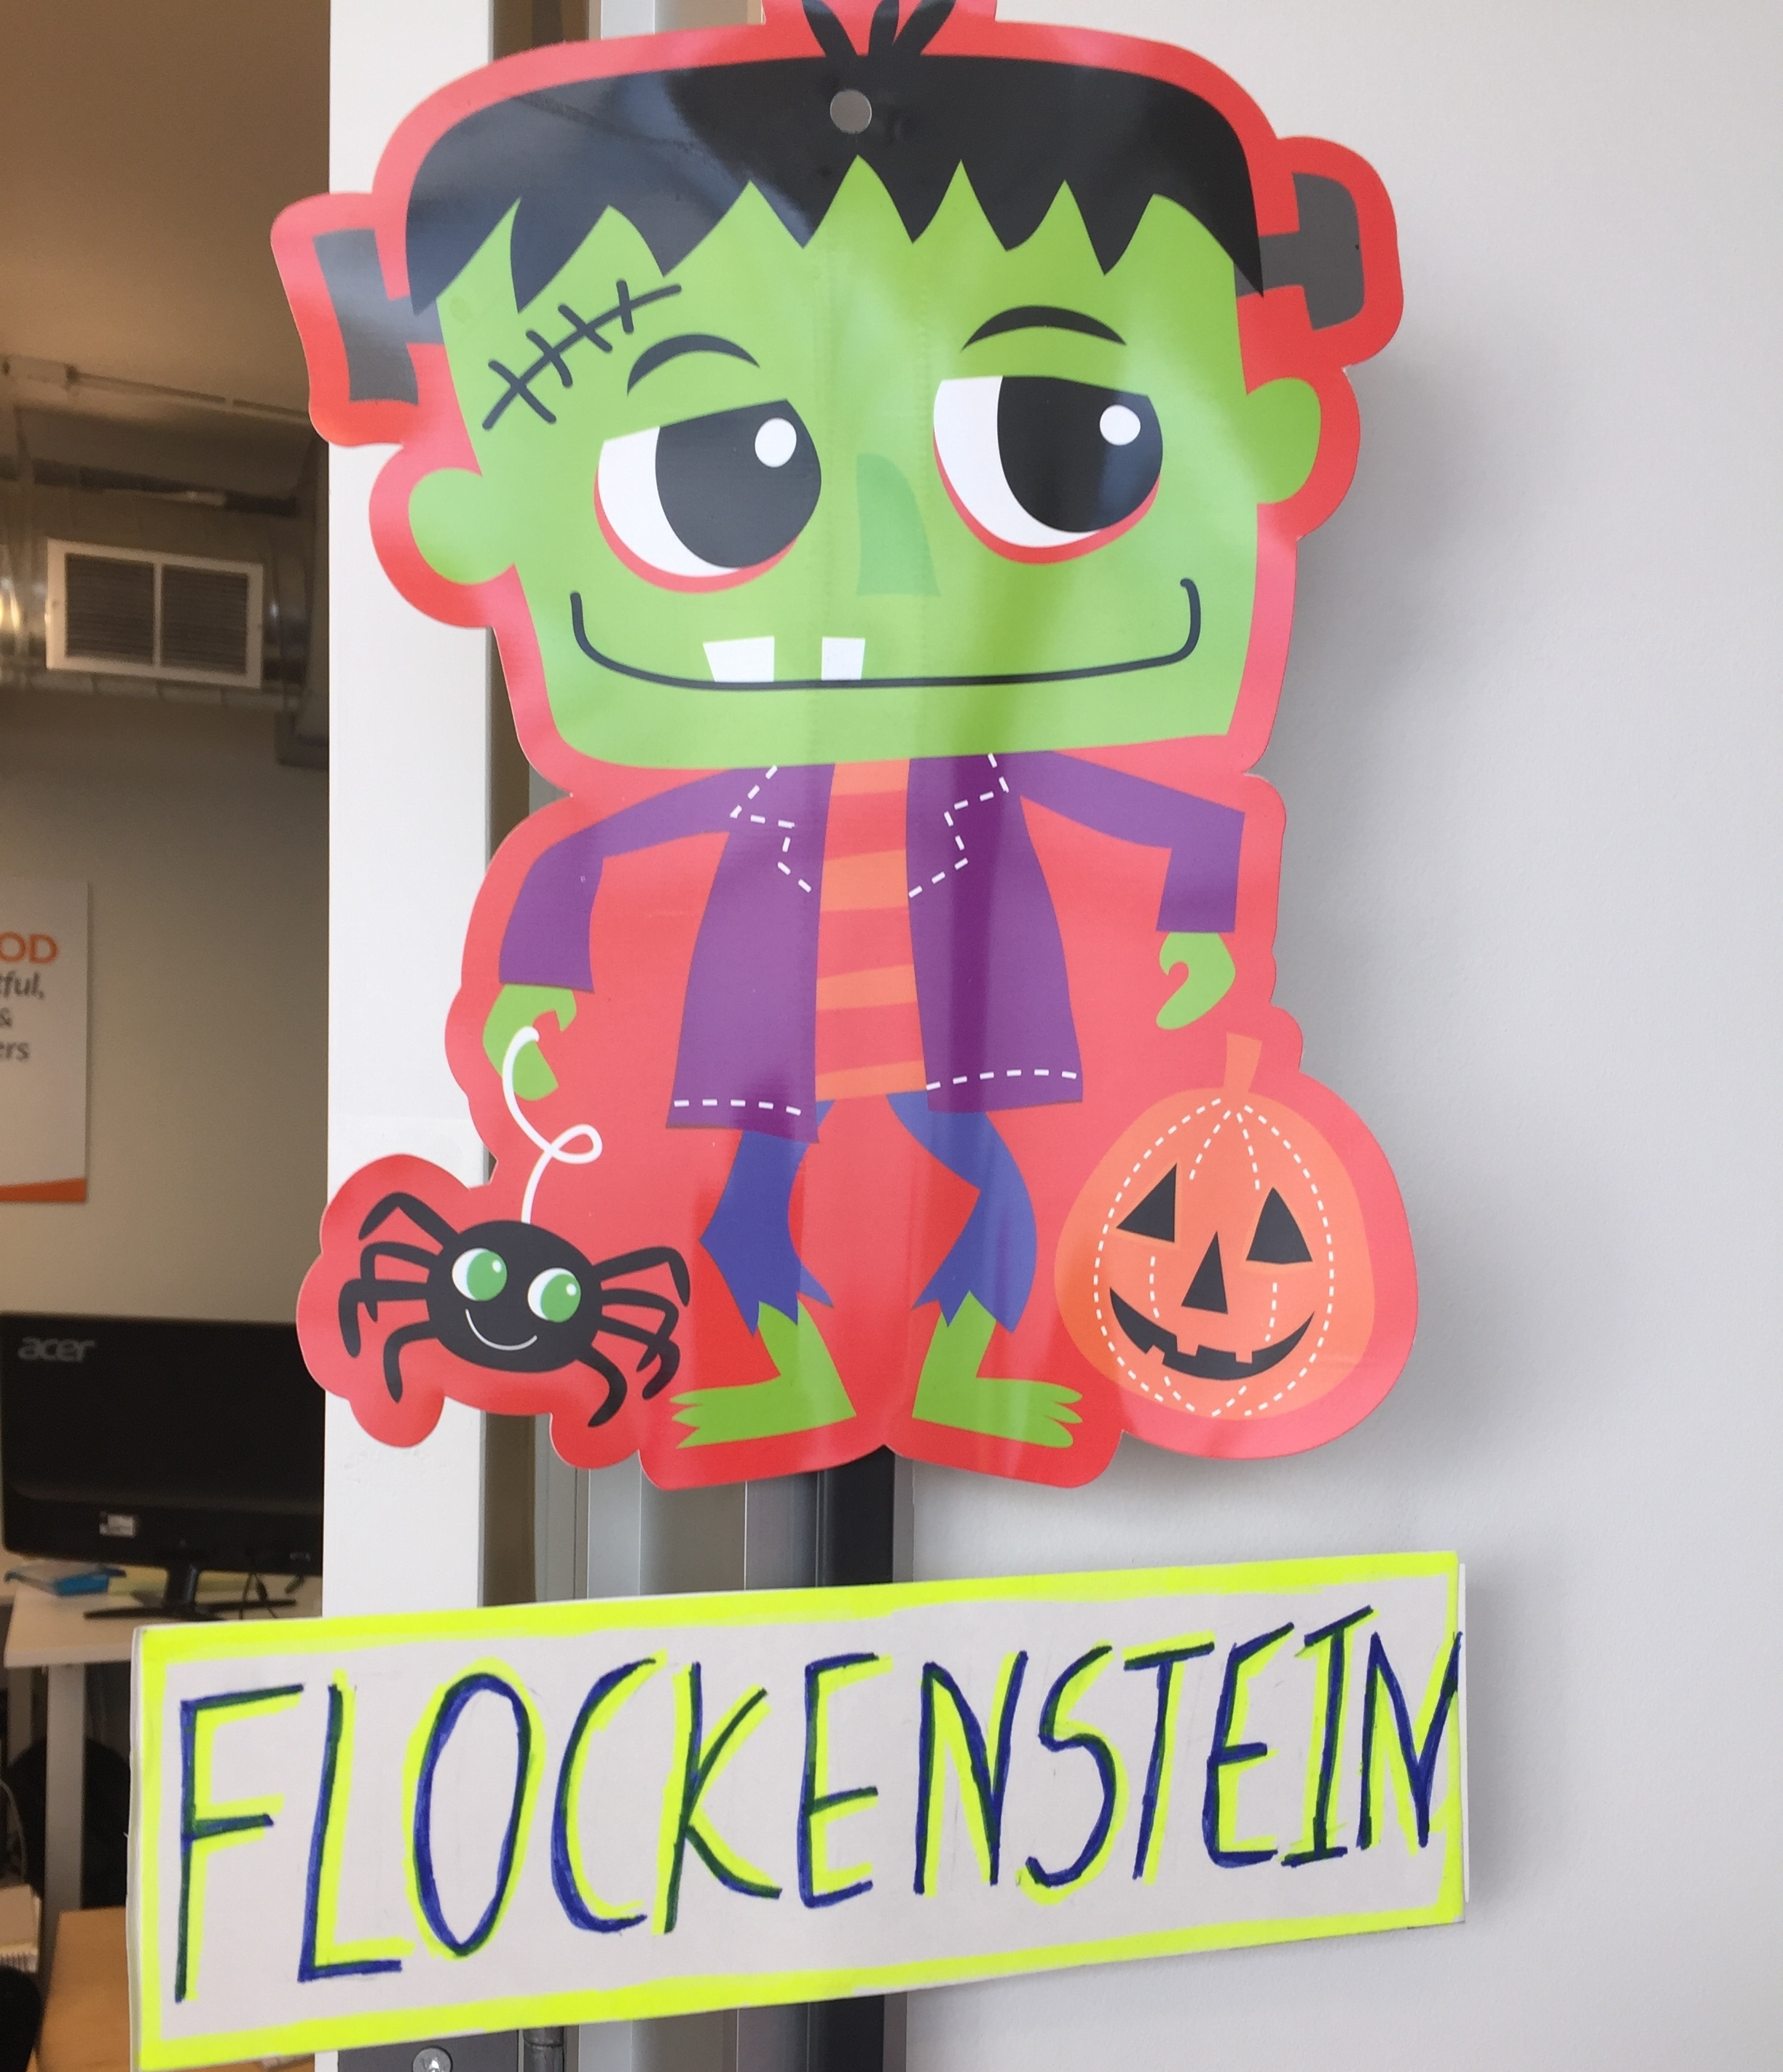 Our version of the Frankenstein